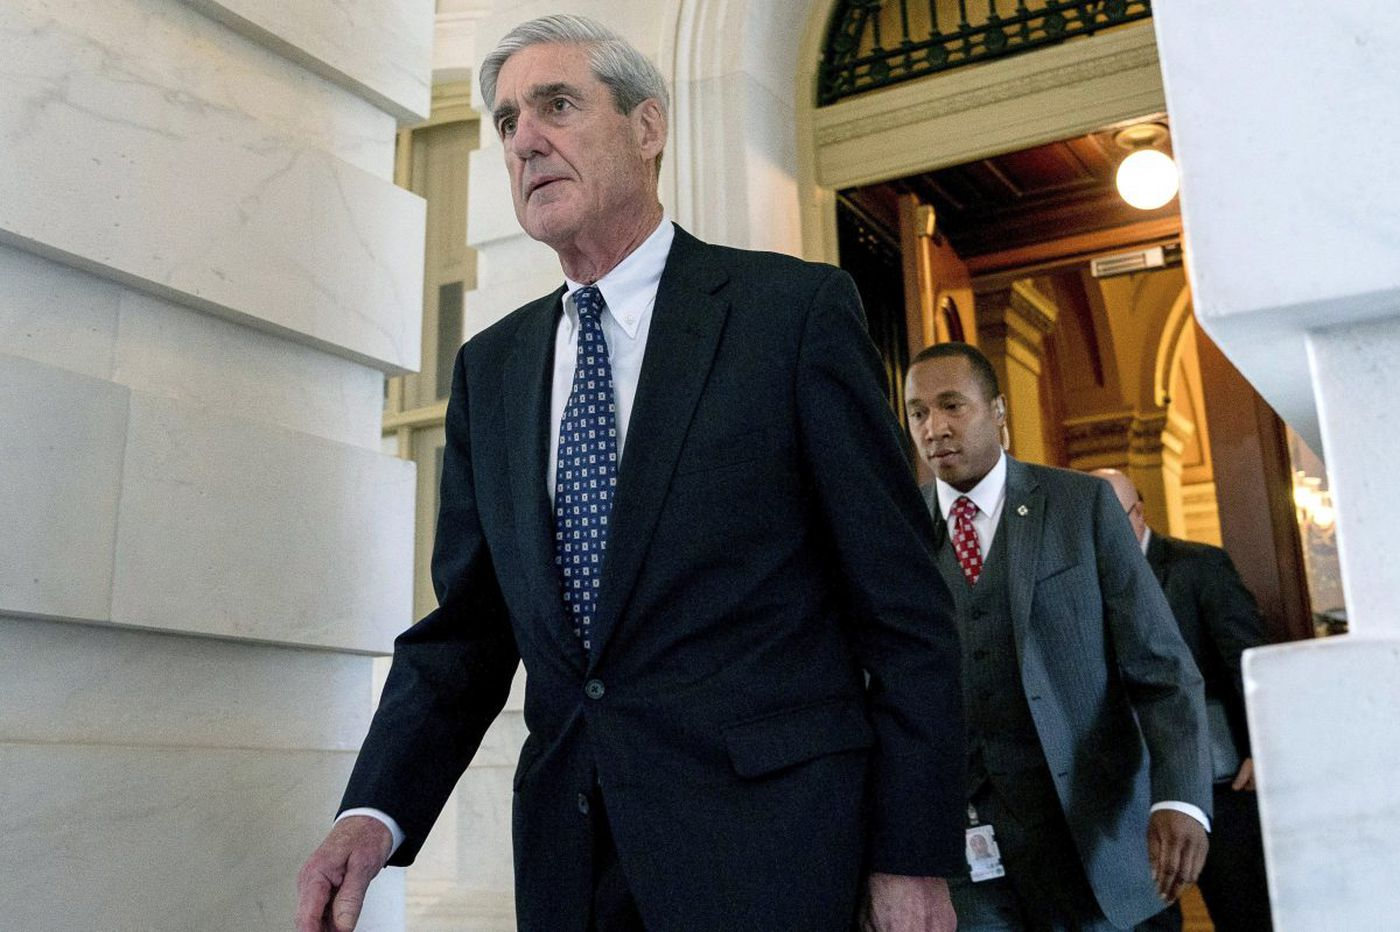 Democrats want to protect special counsel after Trump's flirtation with firing Mueller